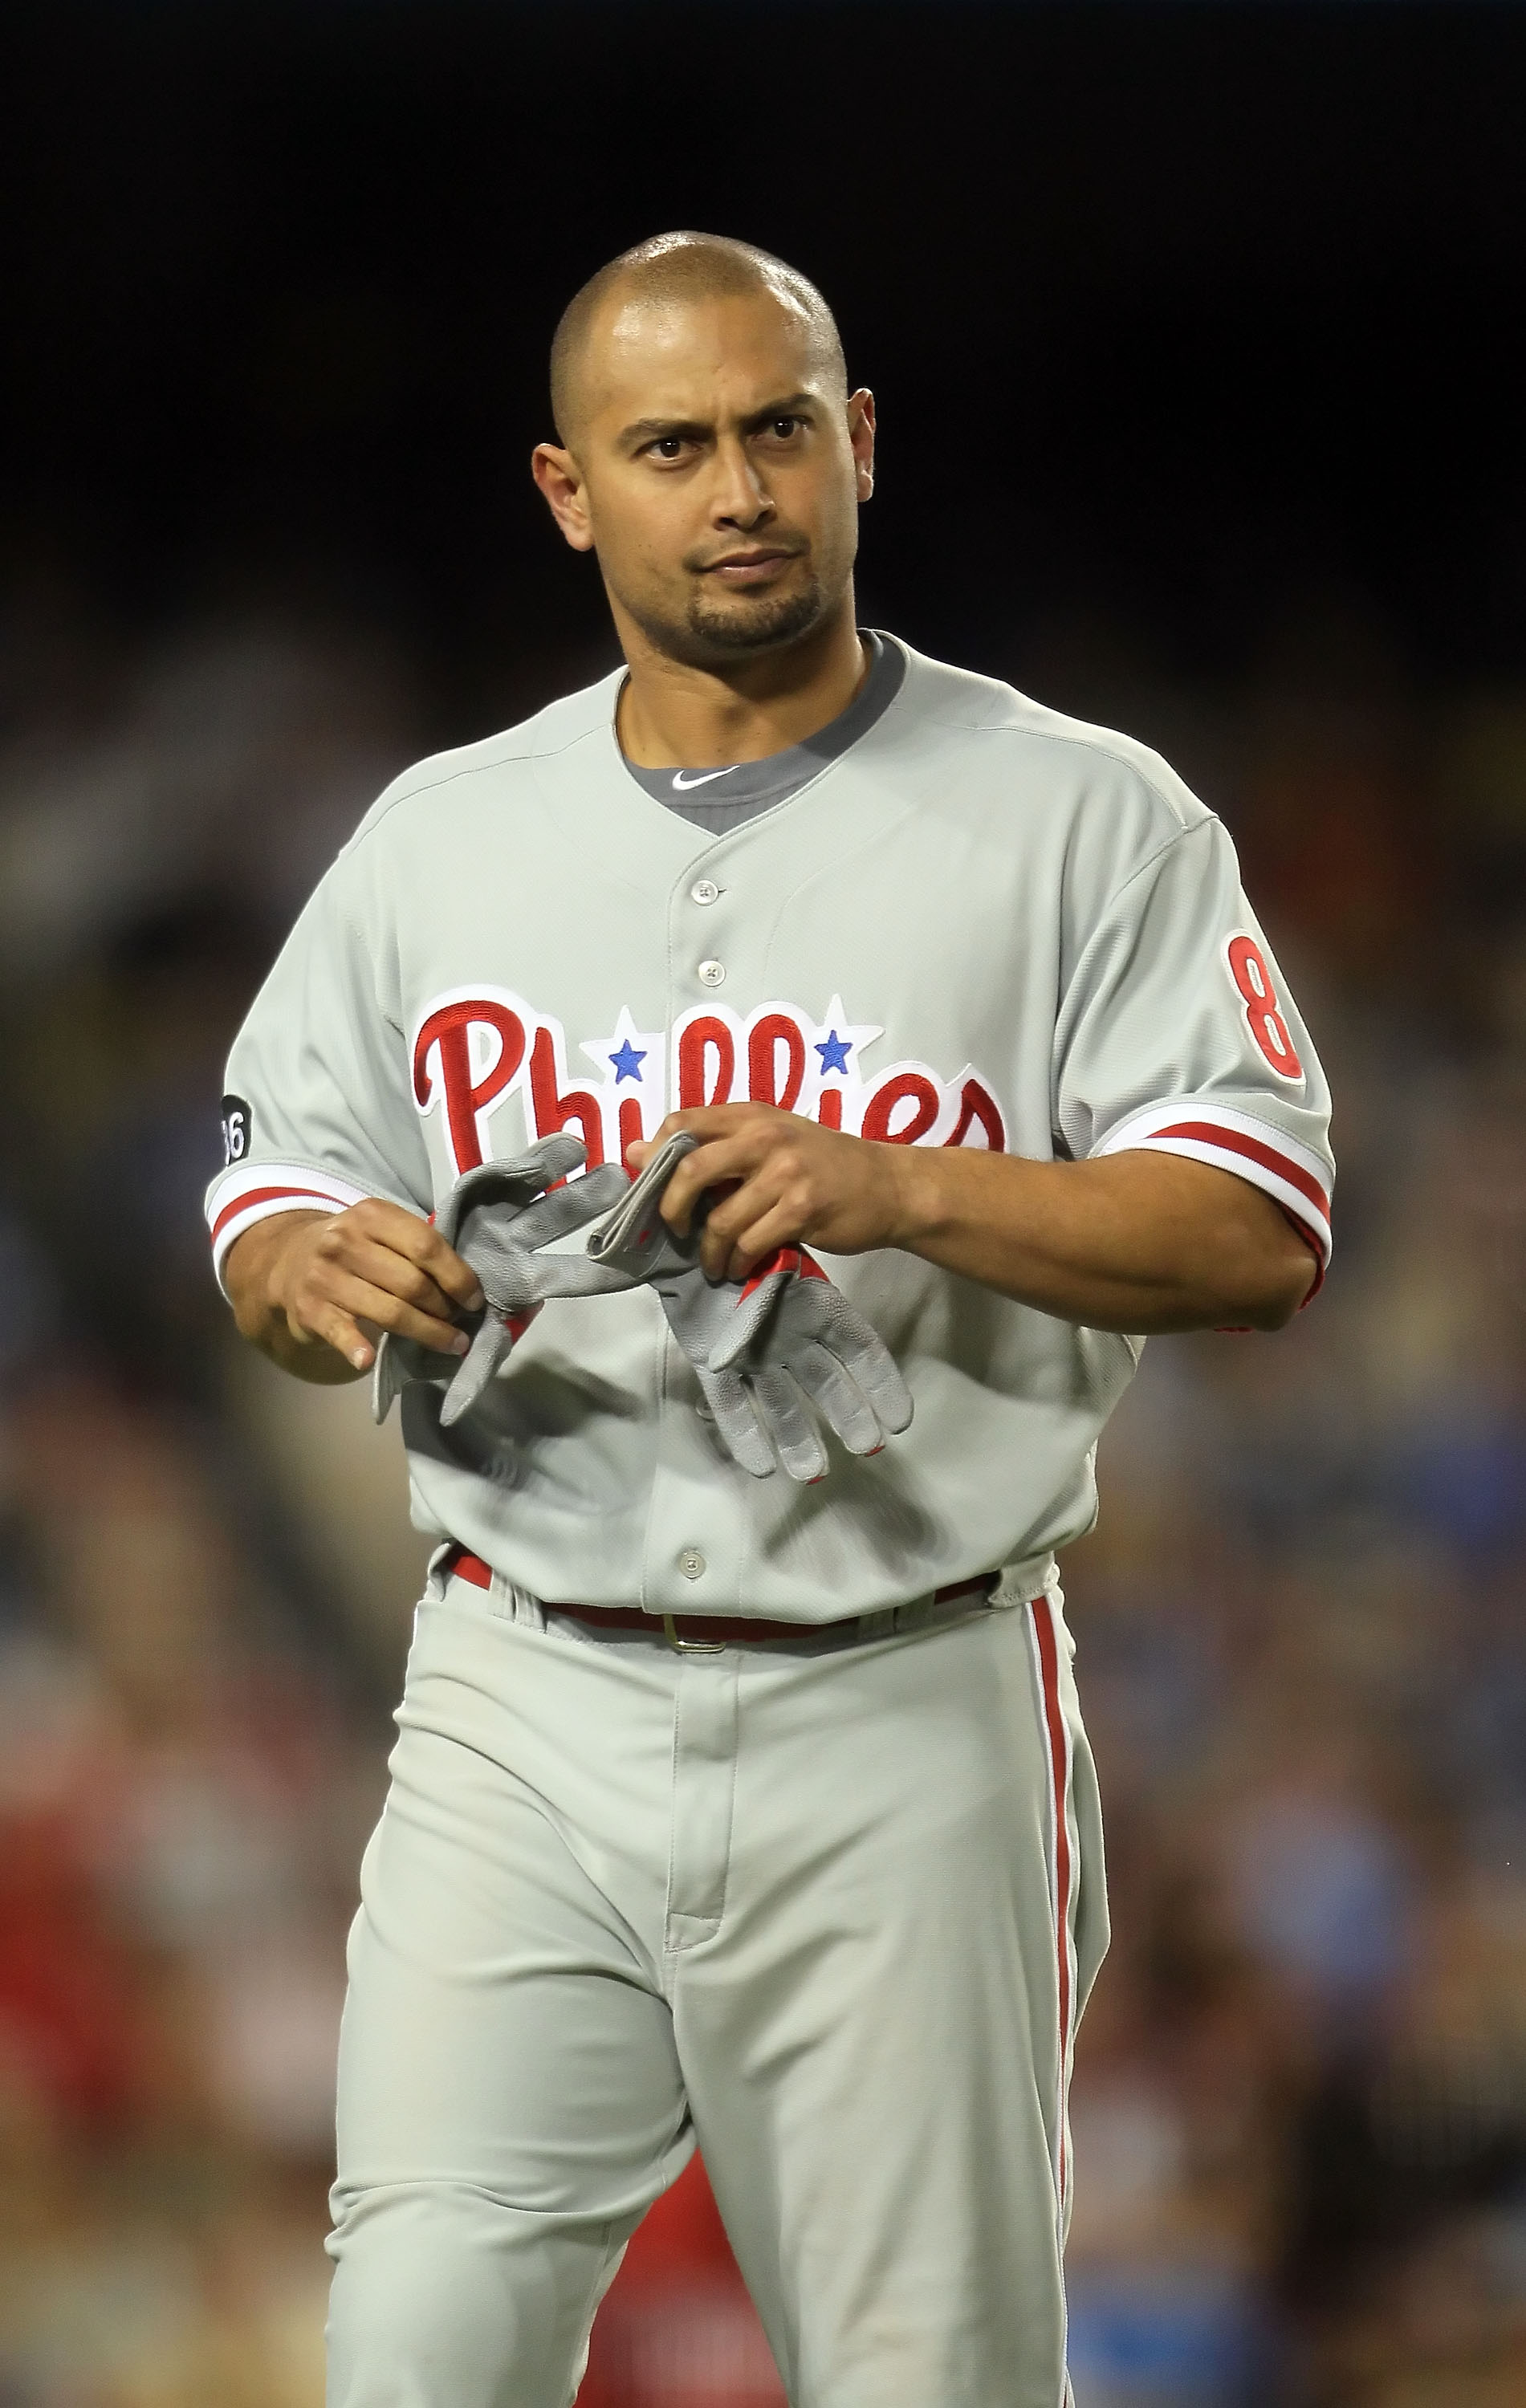 LOS ANGELES, CA - AUGUST 31:  Shane Victorino #8 of the Philadelphia Phillies looks on against the Los Angeles Dodgers at Dodger Stadium on August 31, 2010 in Los Angeles, California. The Phillies defeated the Dodgers 8-4.  (Photo by Jeff Gross/Getty Imag